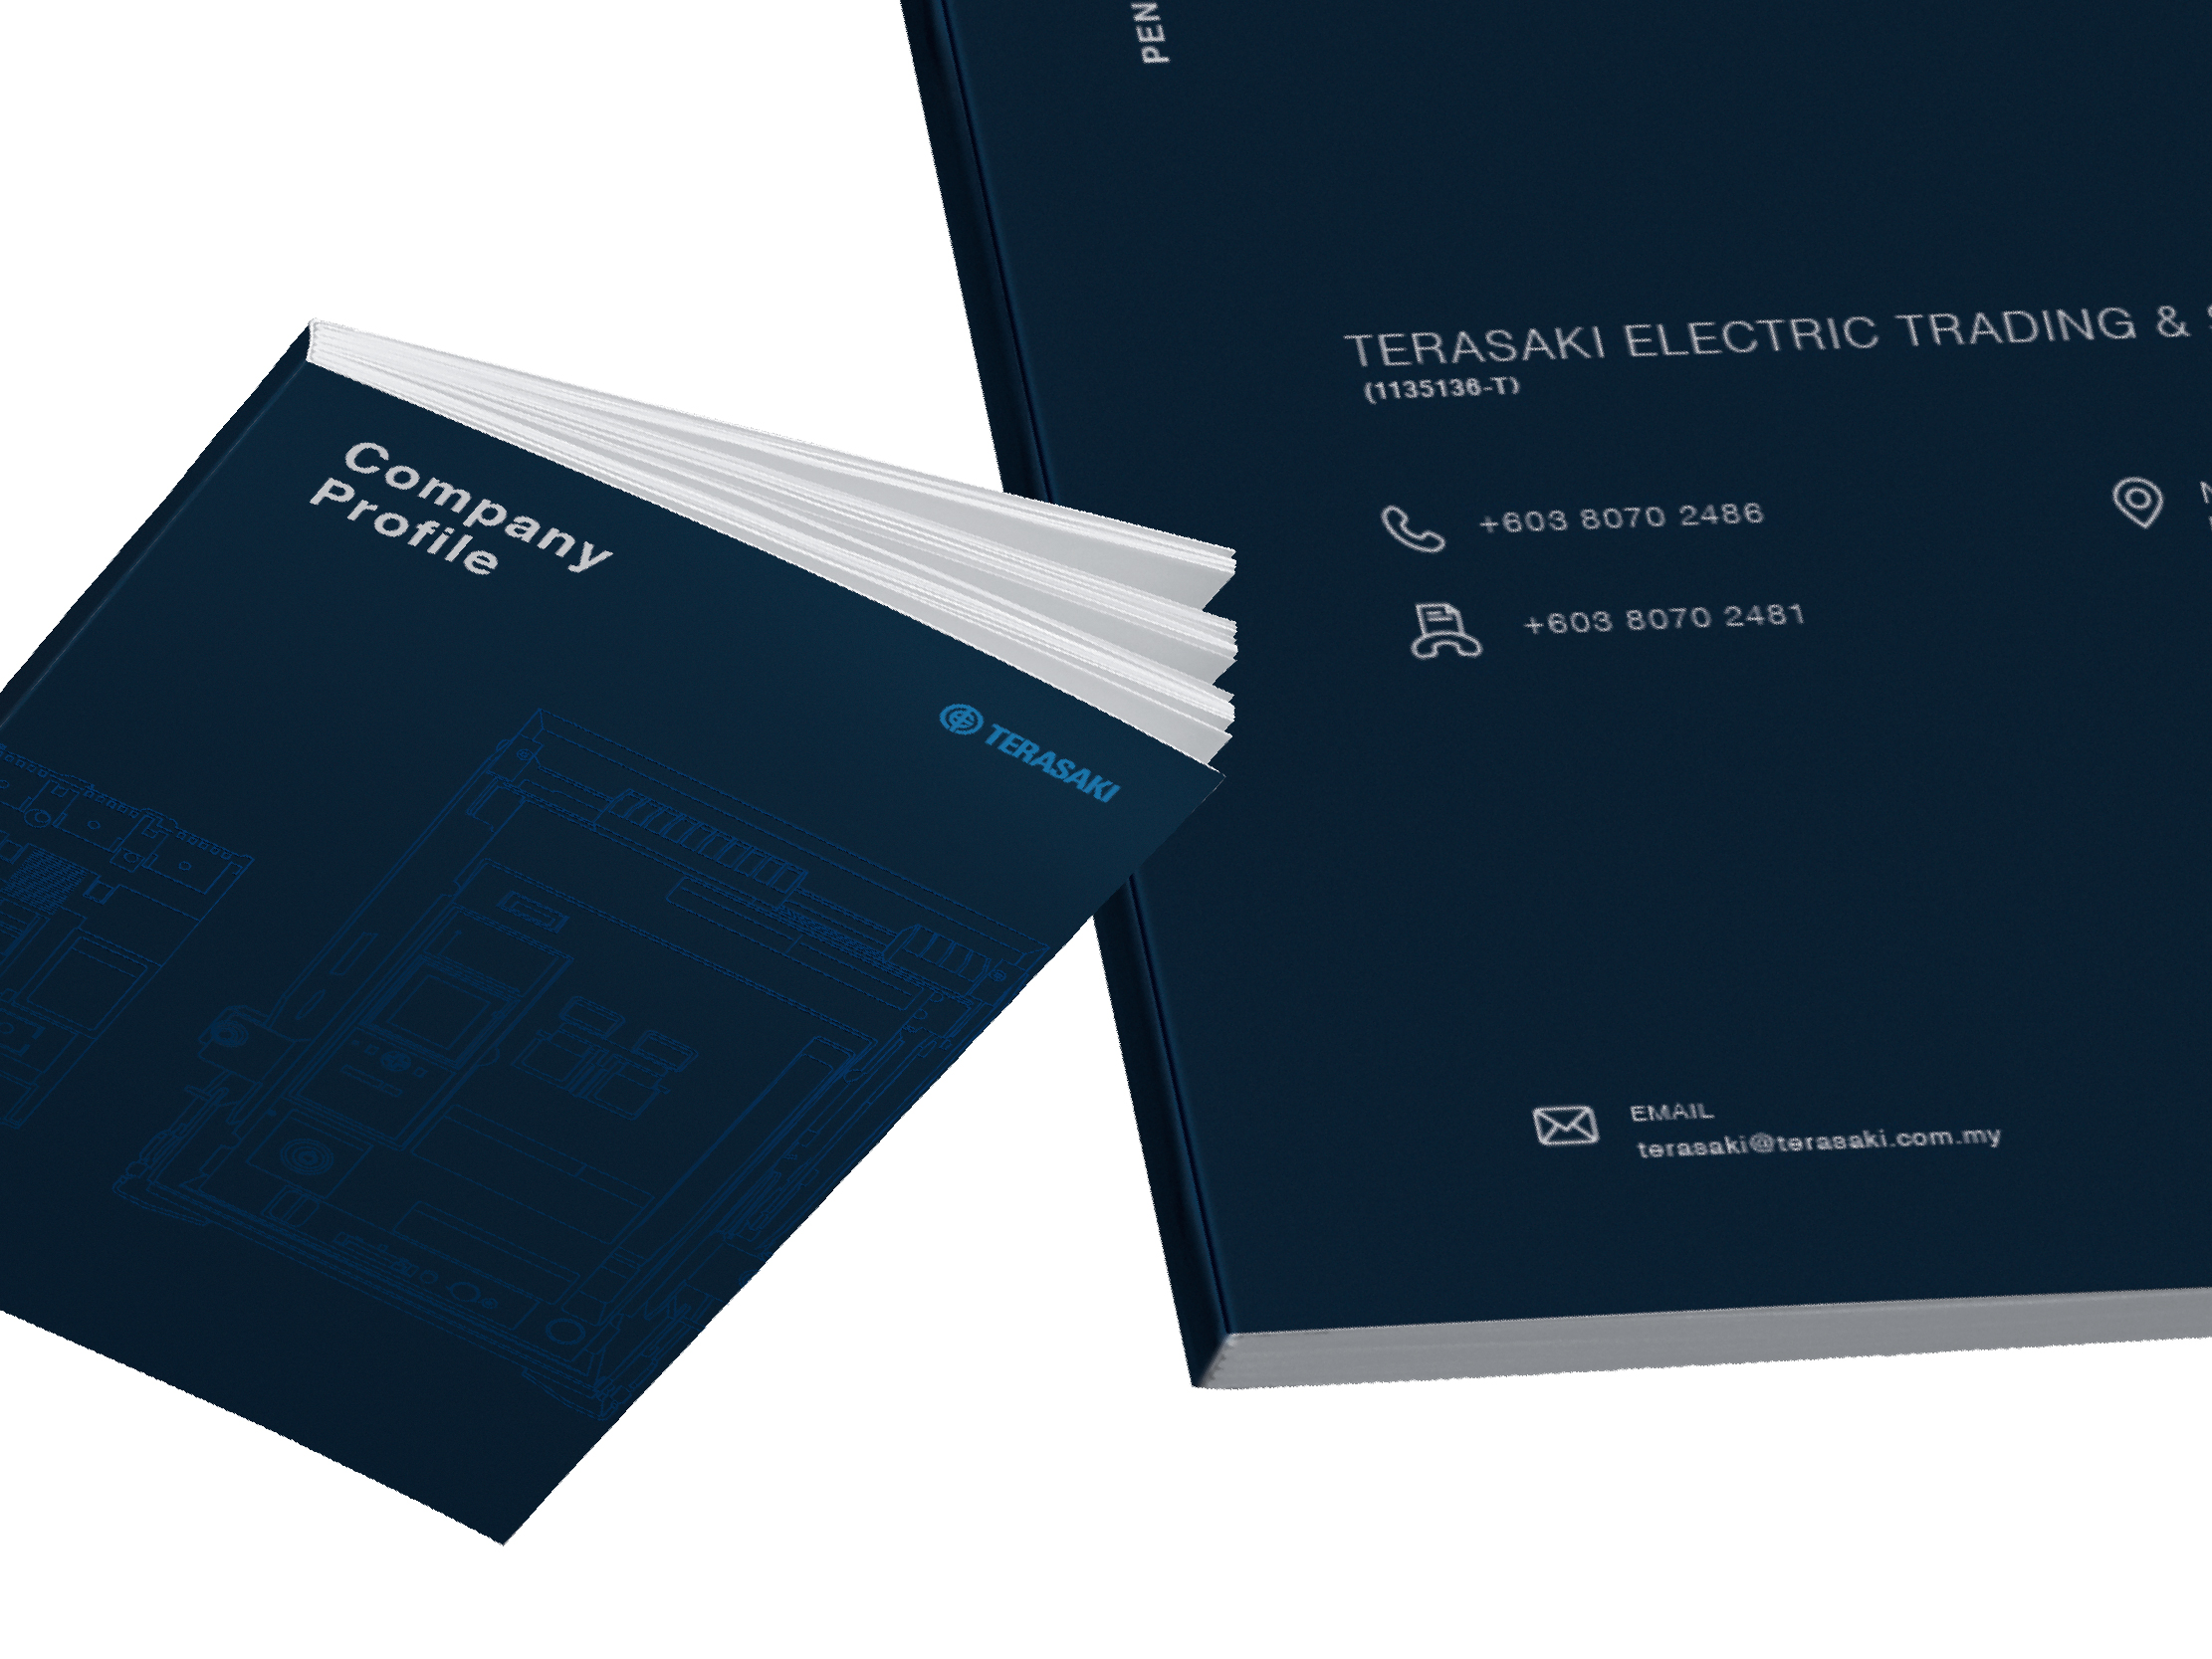 Terasaki Electric company profile front and back cover with clean layout design and product illustration